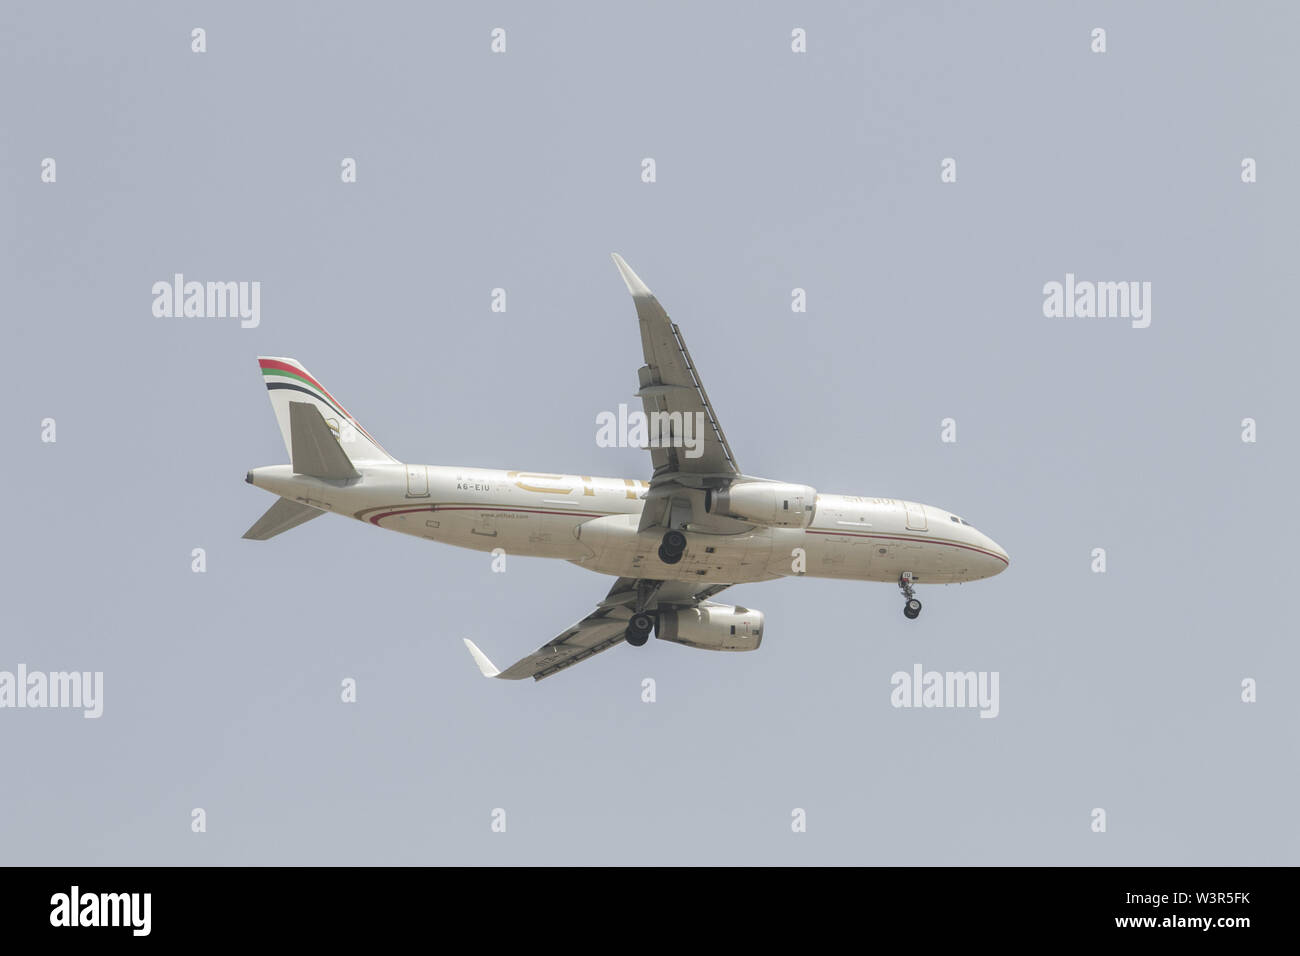 Beirut, Lebanon. 17th July, 2019. The undercarriage of an Etihad commercial passenger jet prepars to land at Rafic Hariri International Airport in Beirut. Credit: Amer Ghazzal/SOPA Images/ZUMA Wire/Alamy Live News - Stock Image